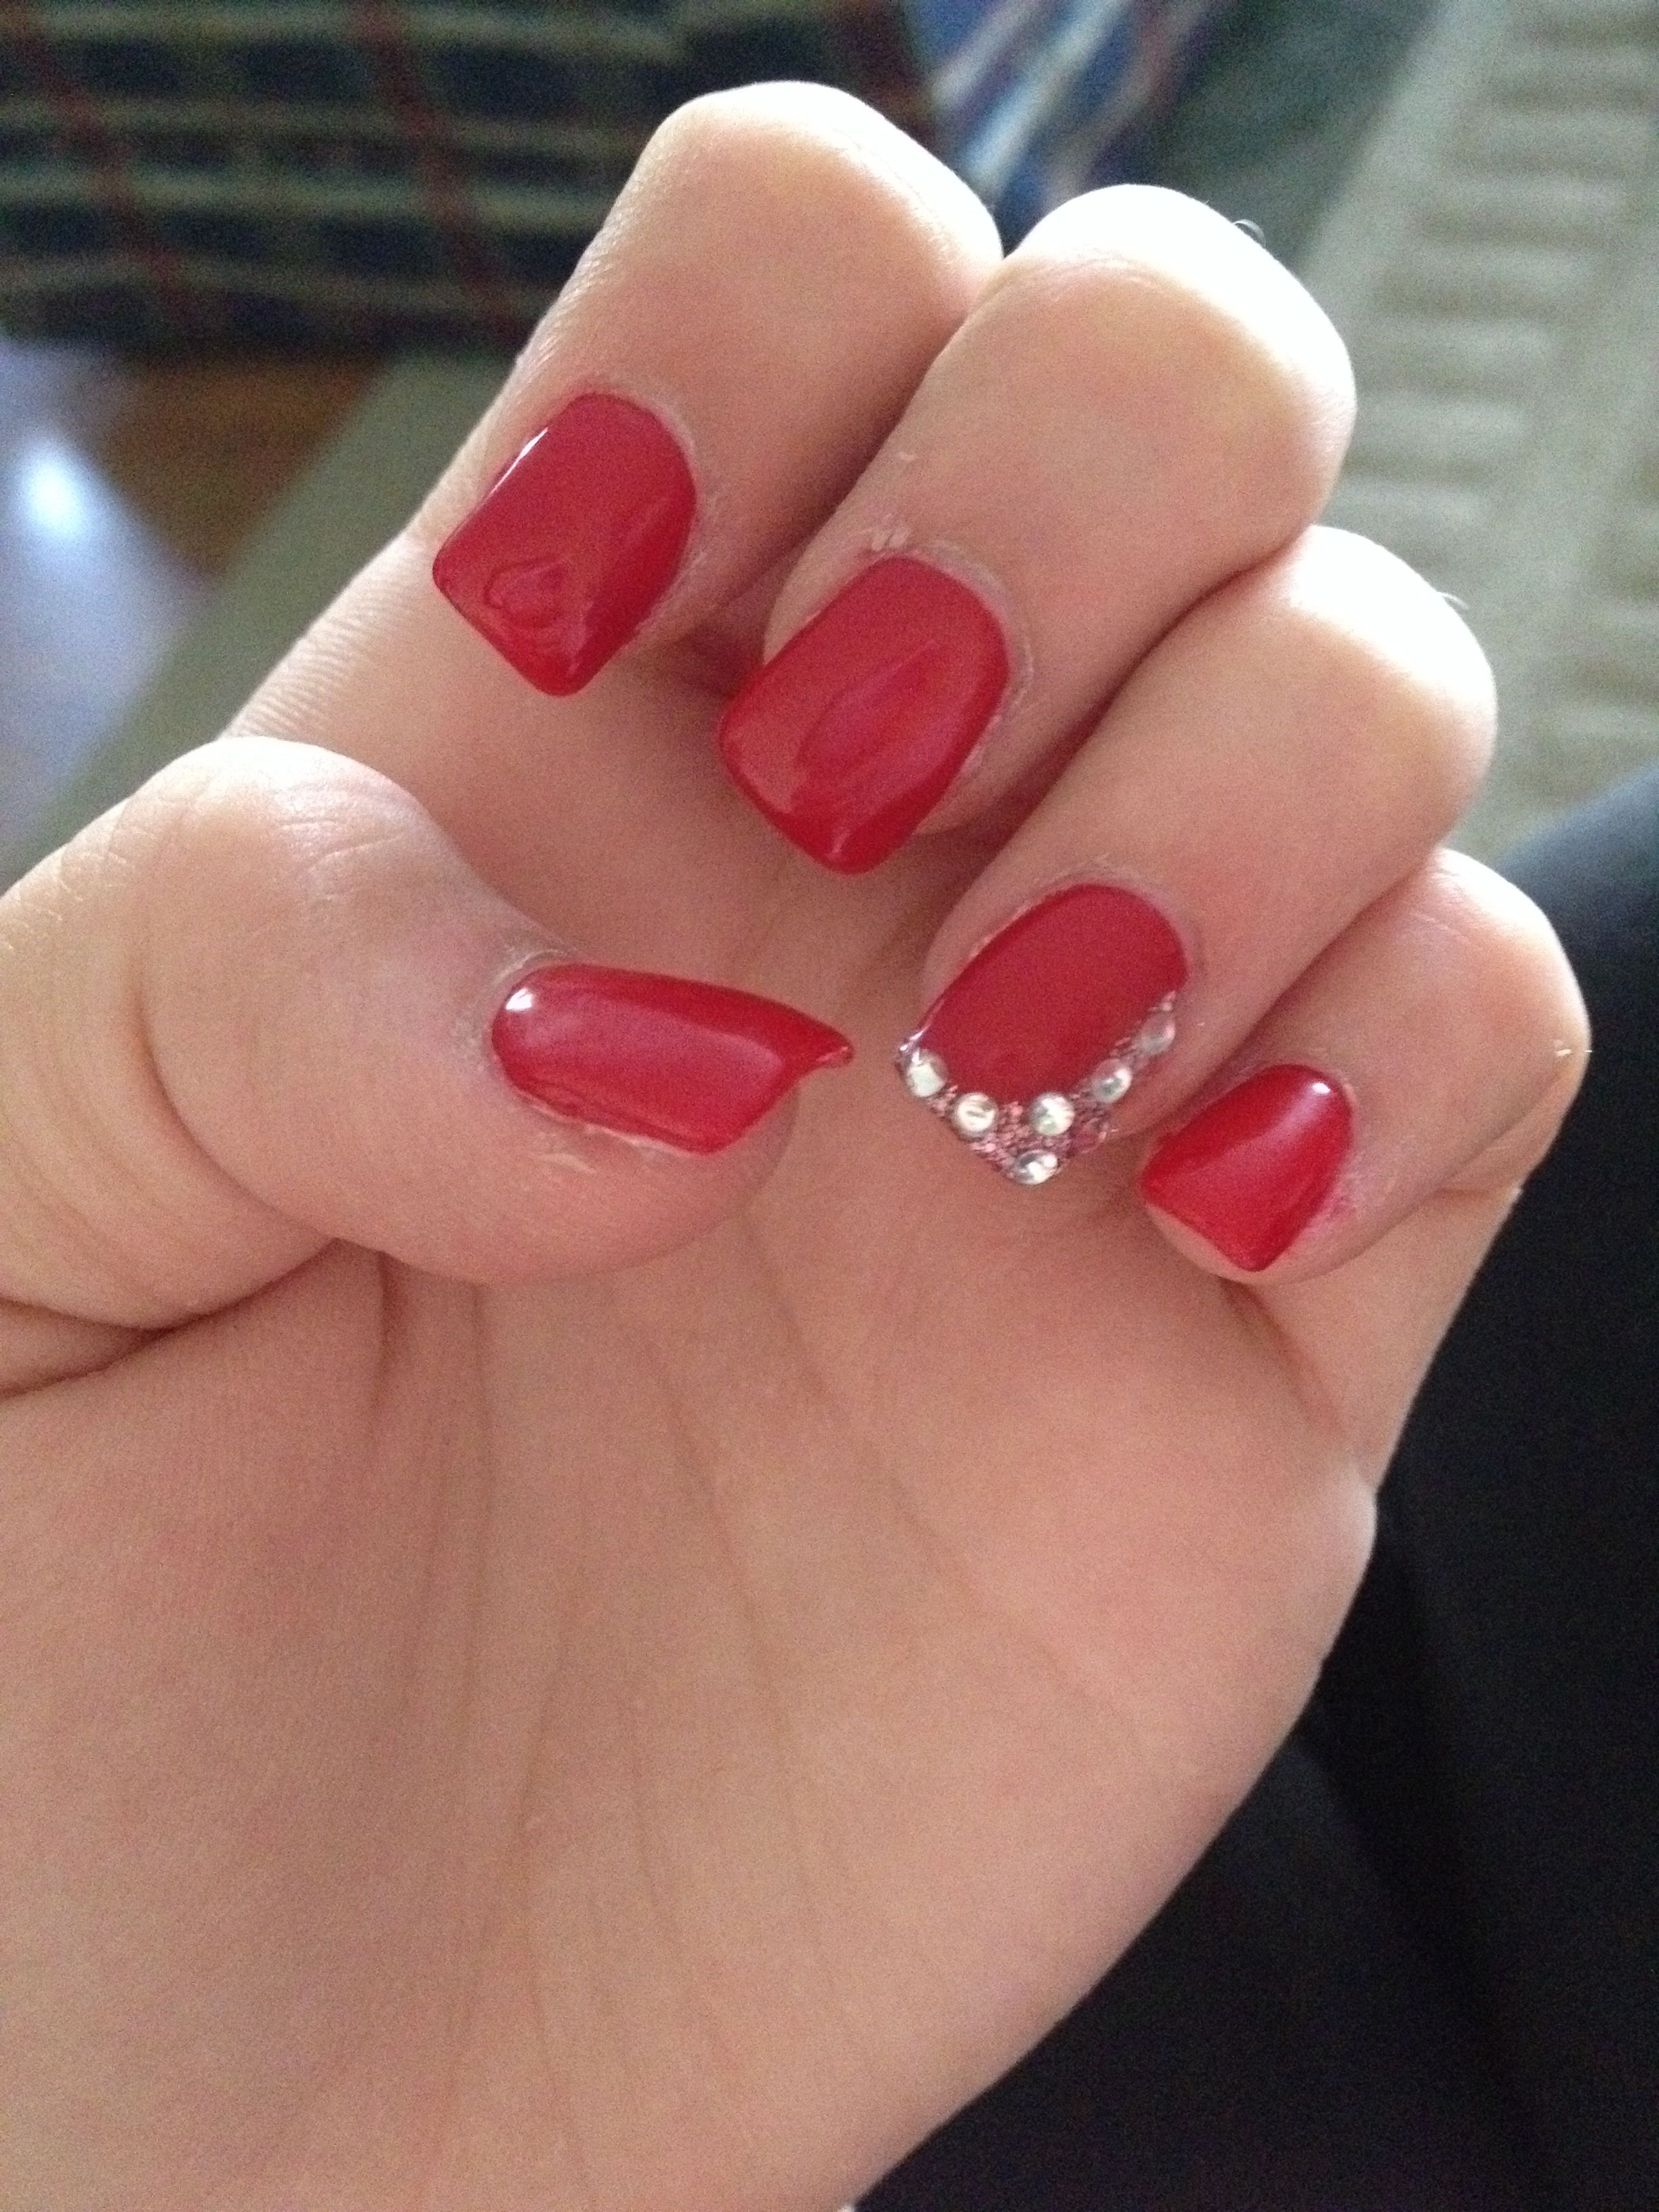 Got Red Nails For Prom Jems And Sparkles Were Added Nail Ideas